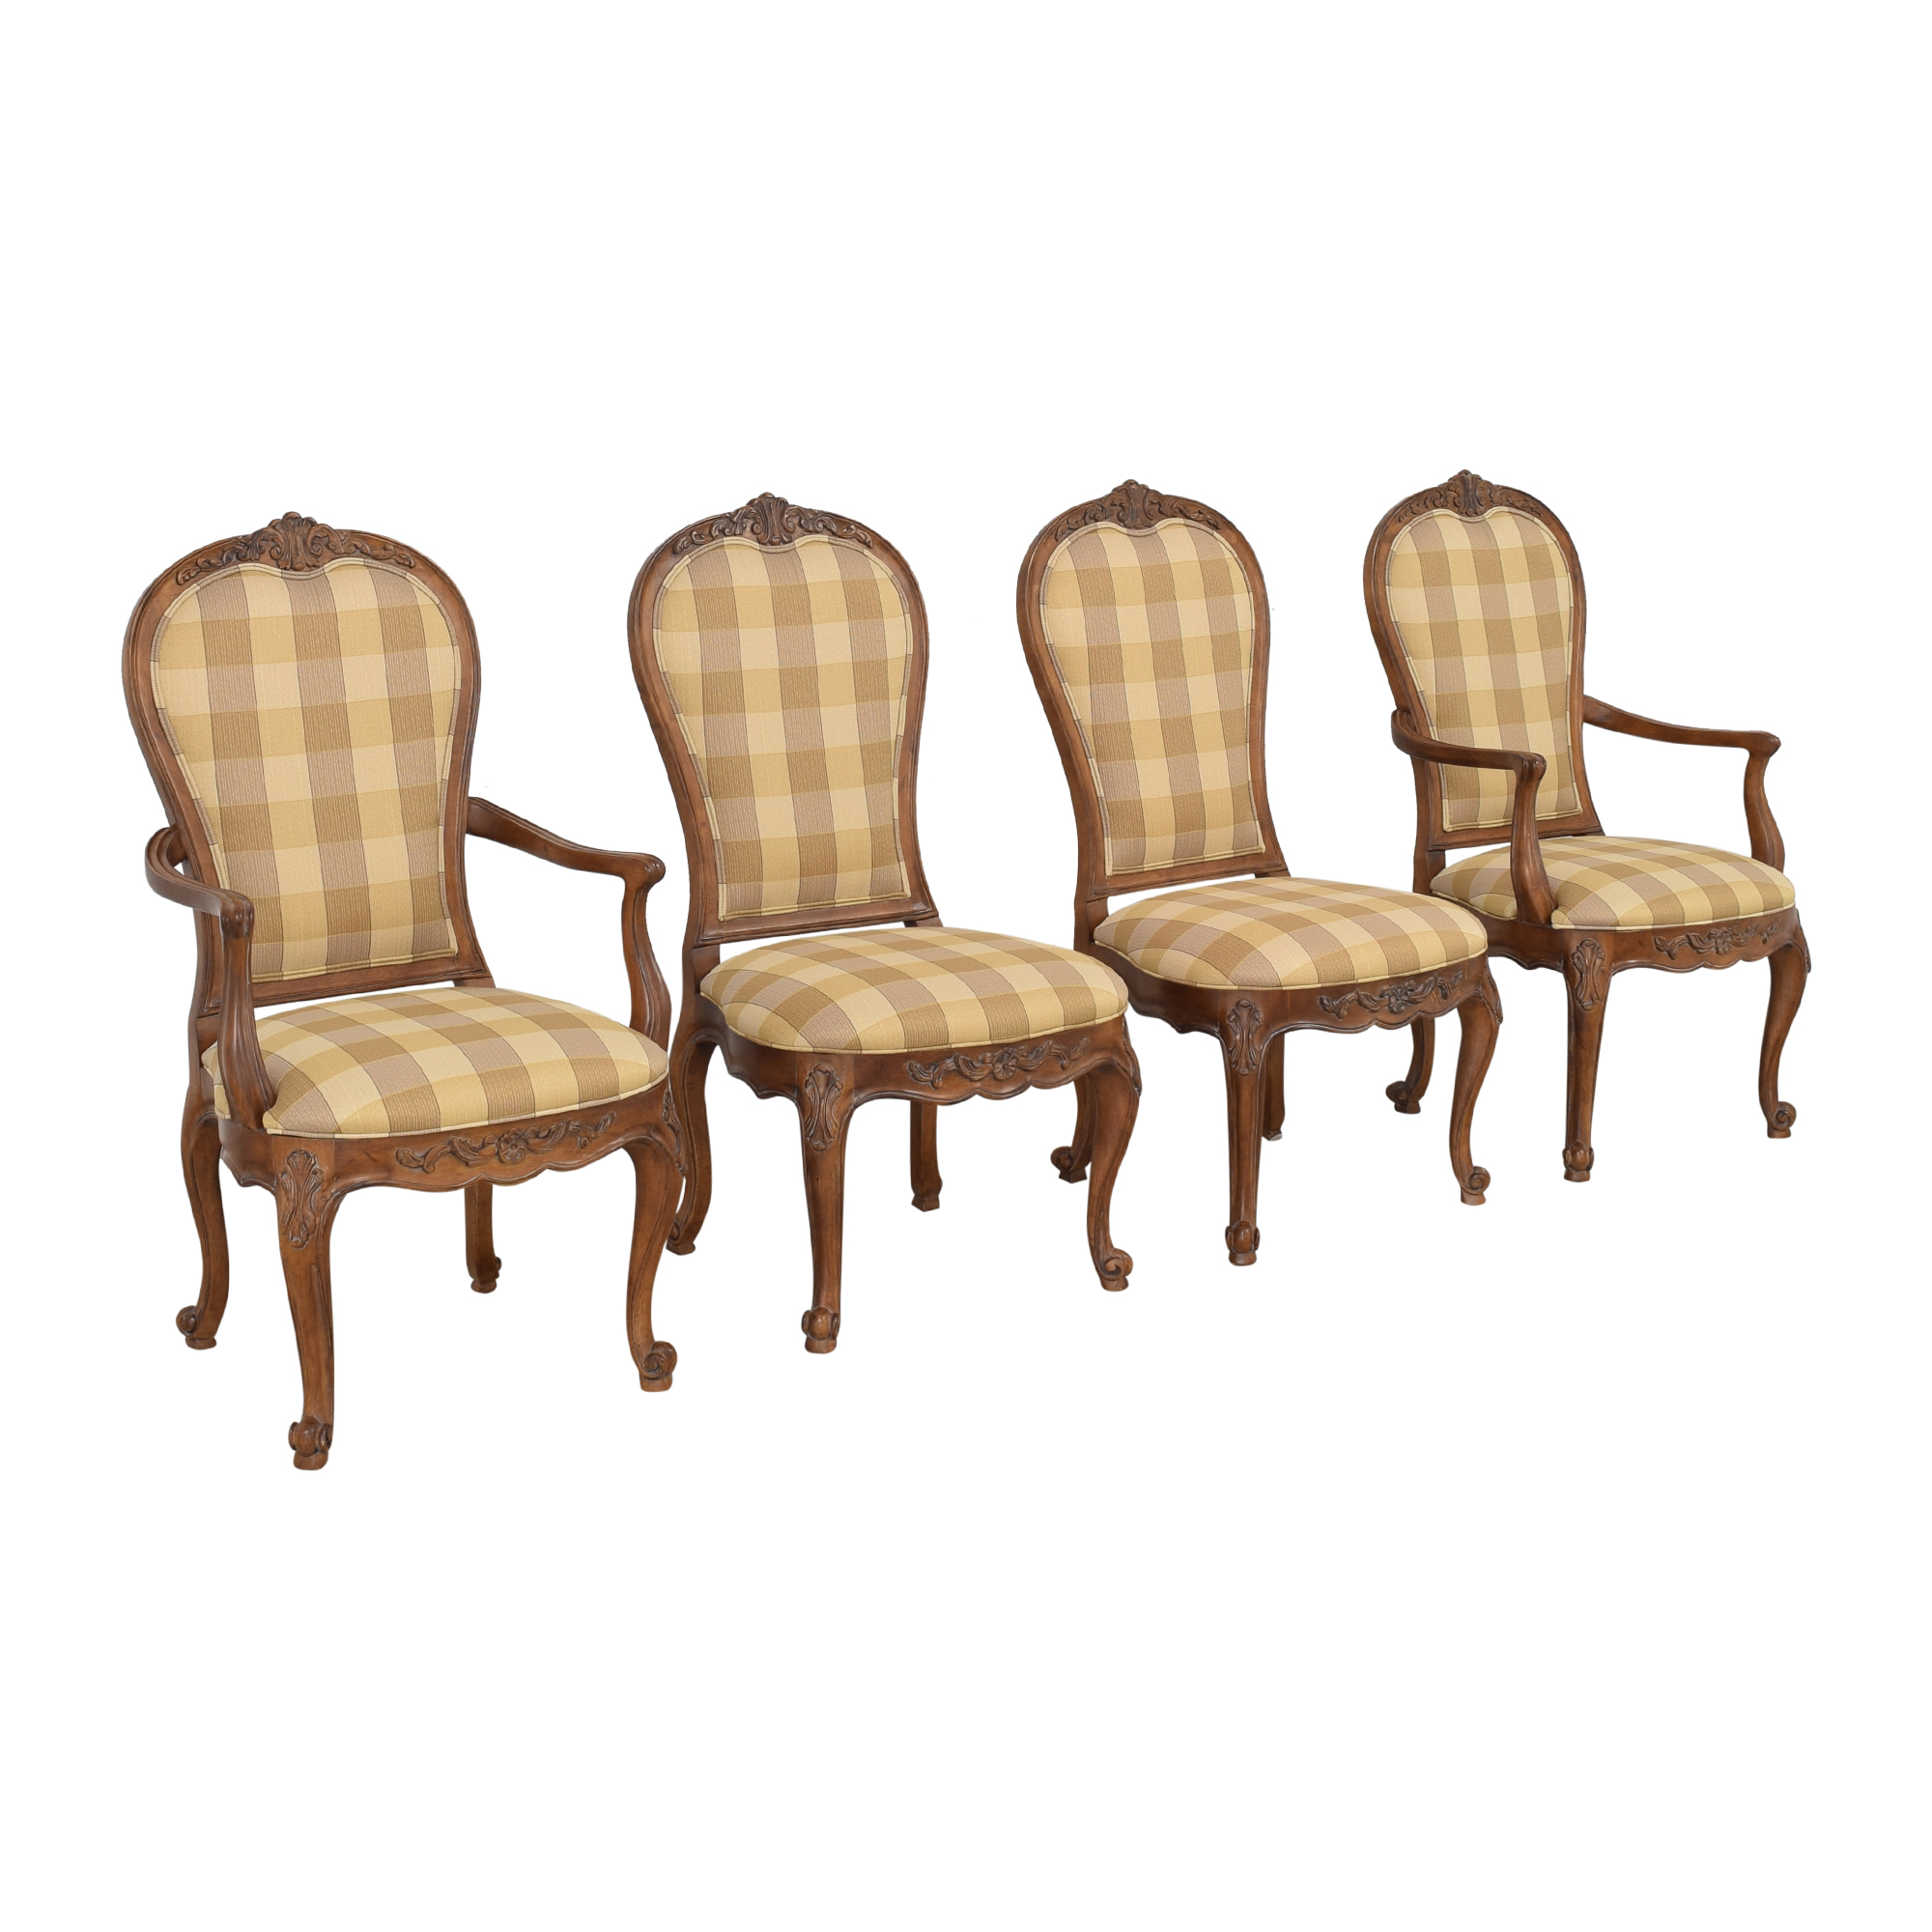 Century Furniture Century Furniture Dining Chairs nj